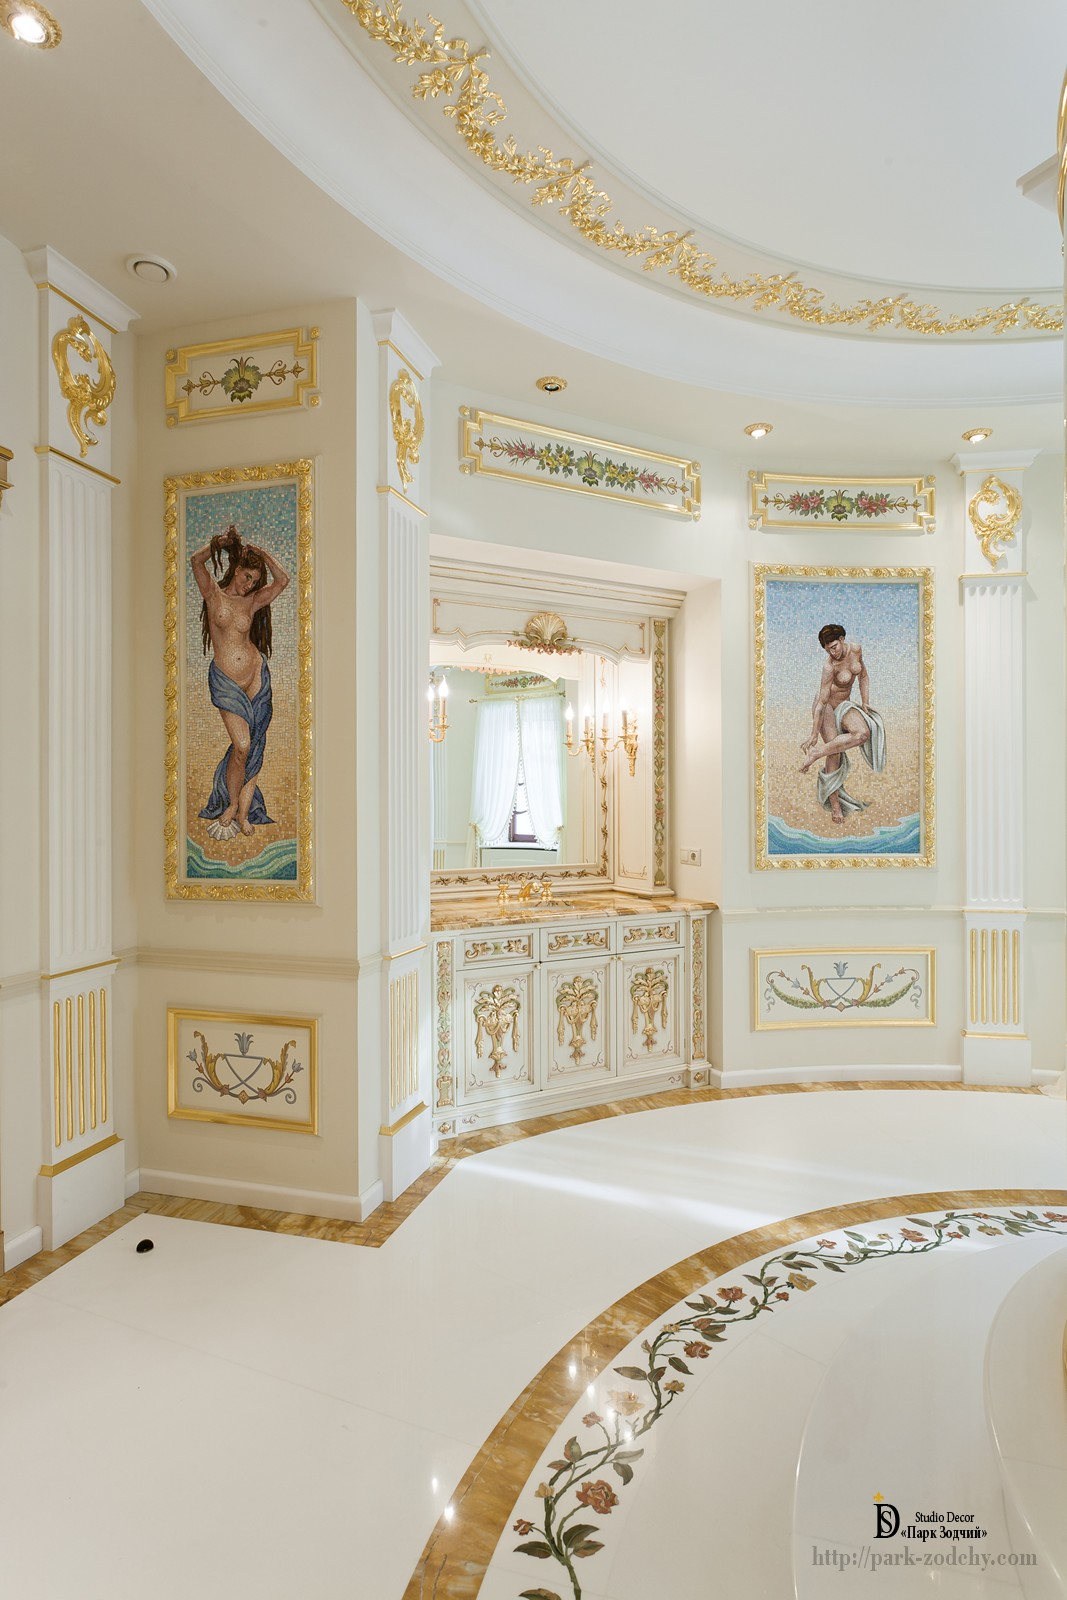 Large bathroom with exclusive decor